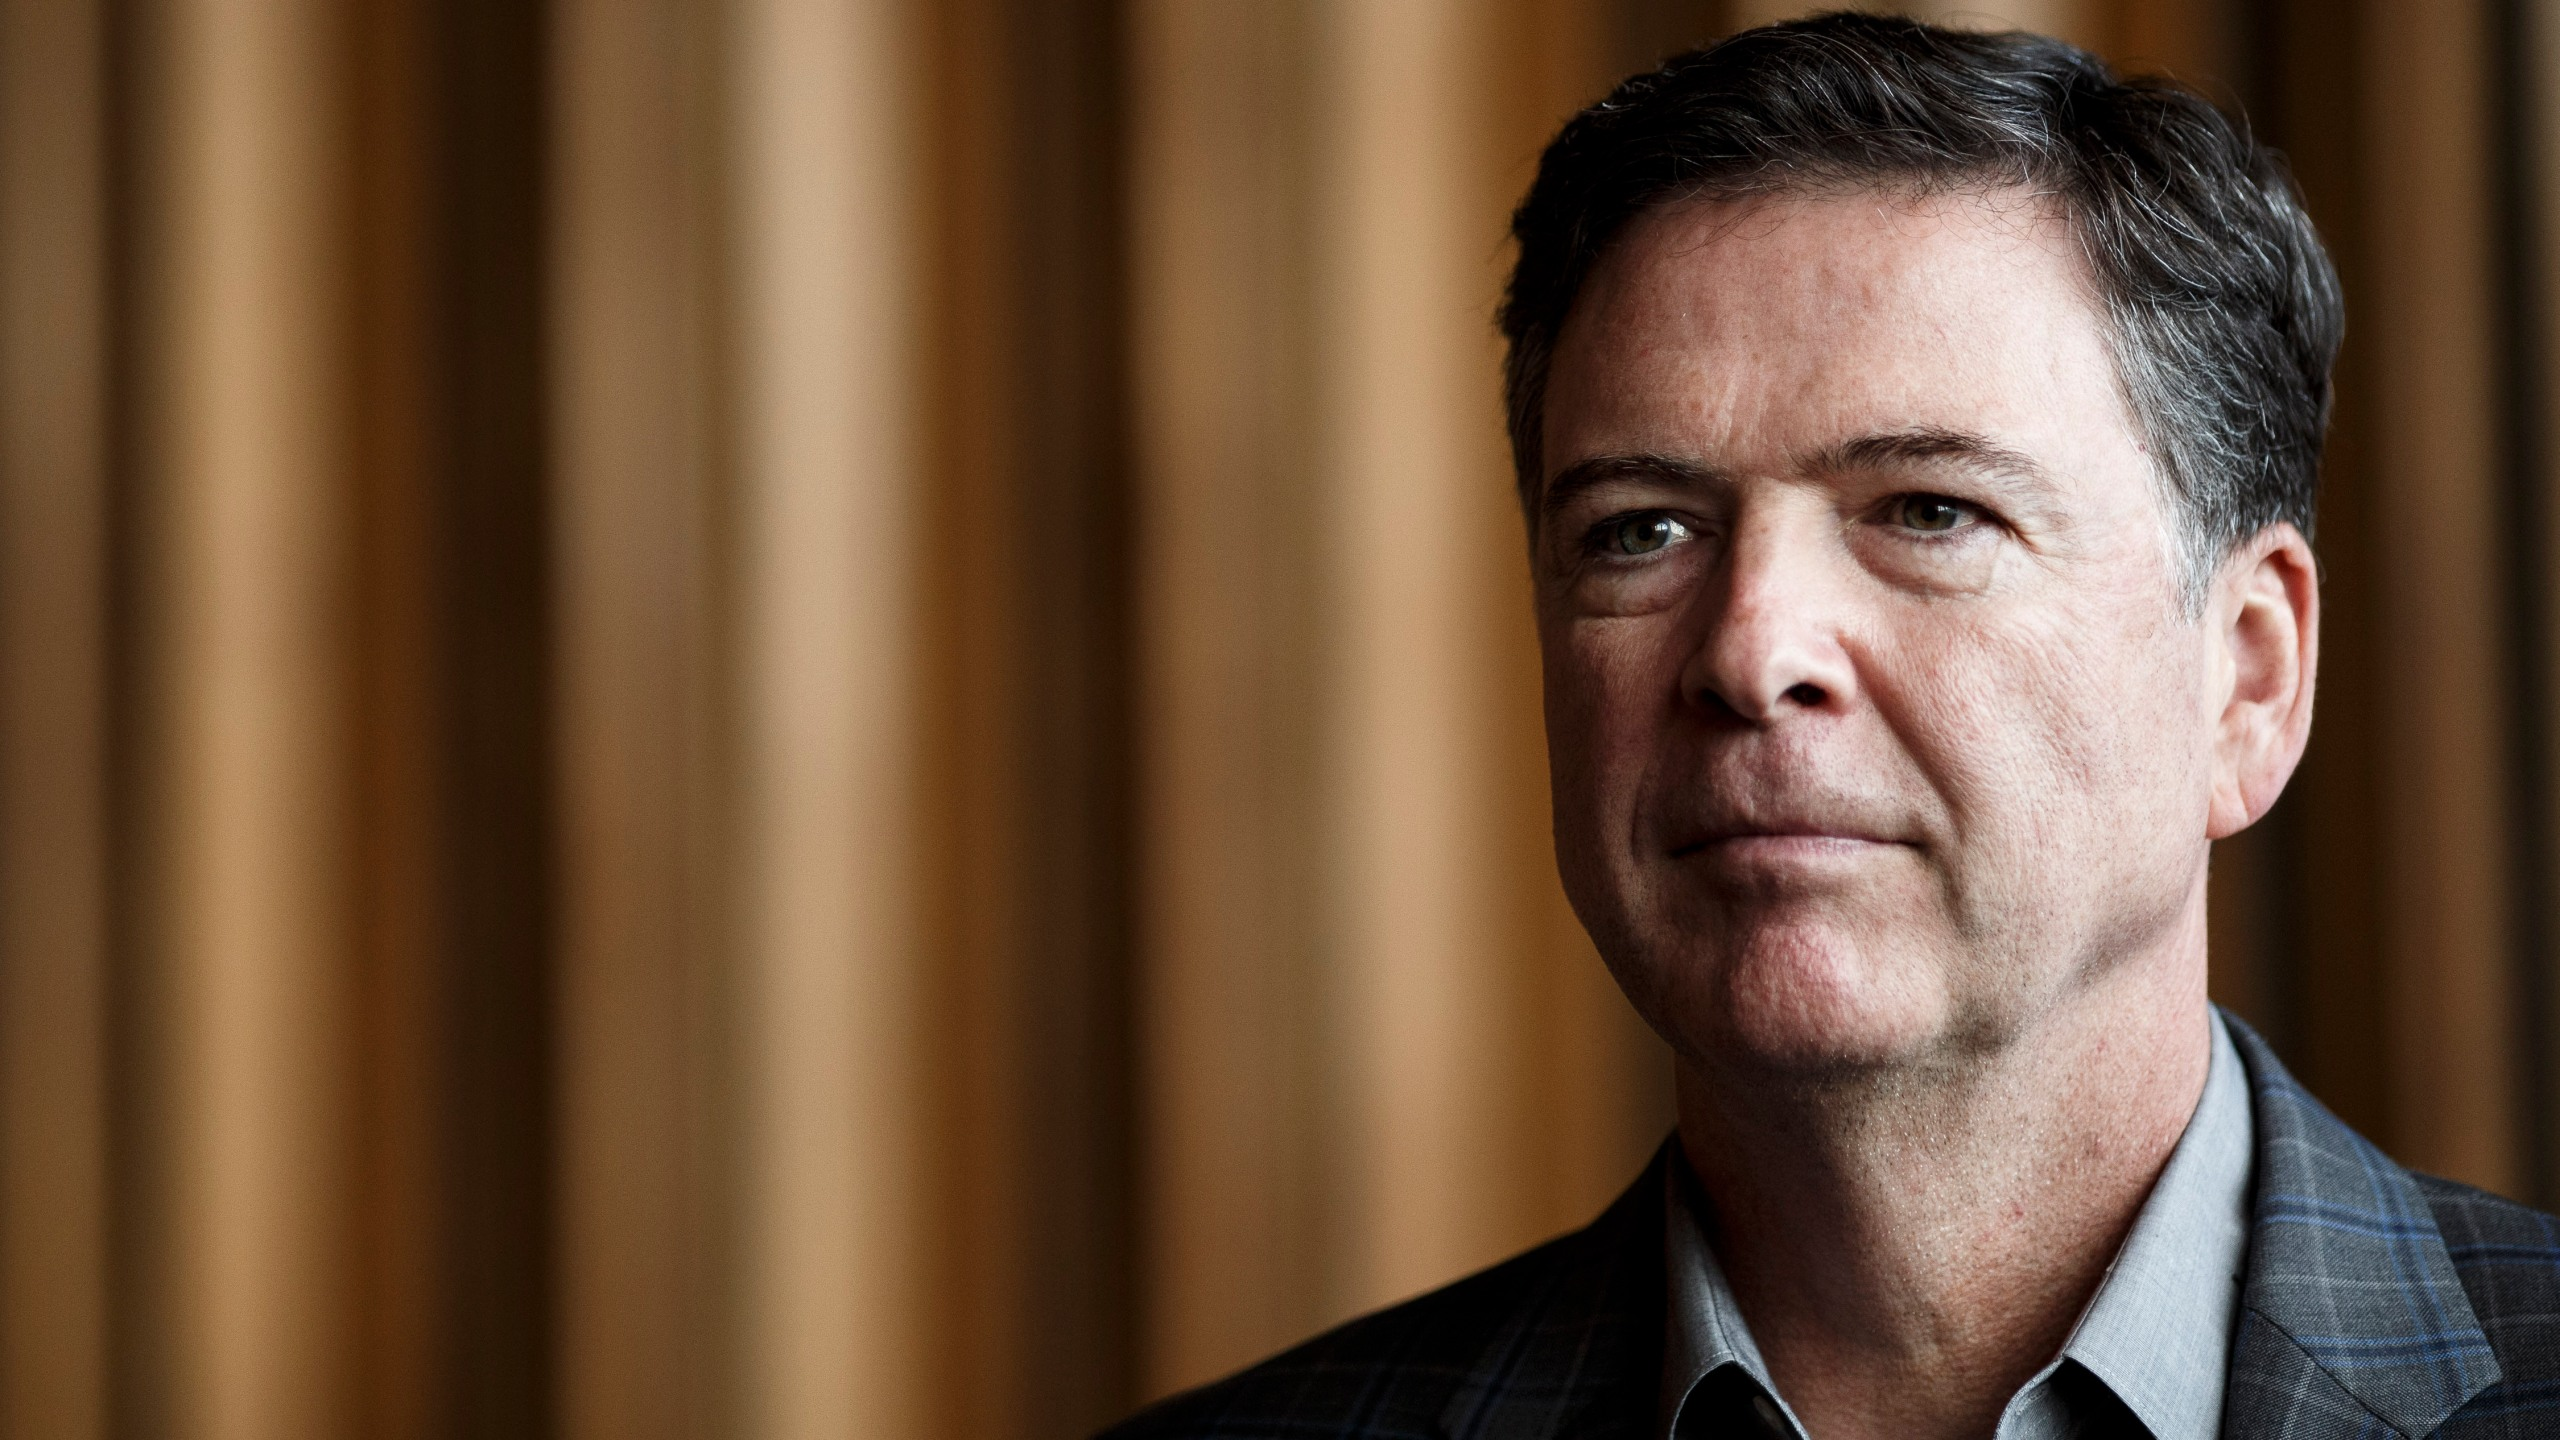 Former FBI Director James Comey talks backstage before a panel discussion about his book on June 19, 2018 in Berlin, Germany. (Credit: Carsten Koall/Getty Images)